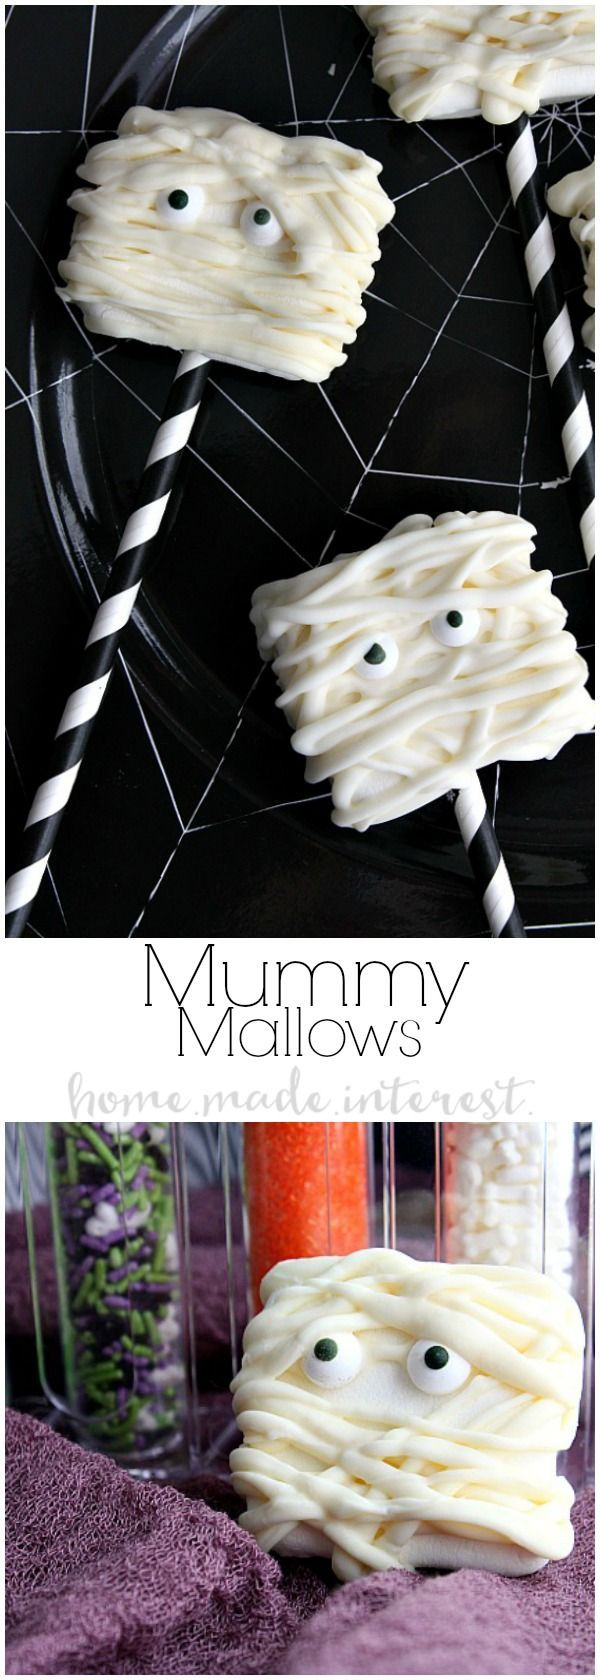 Are you ready for this seriously cute Marshmallow Halloween recipe? These adorable Mummy Marshmallows are an easy Halloween recipe that just takes some melted candys and a big campfire marshmallow. Kids are going to love this Halloween Dessert recipe and it is easy enough to make for a Halloween party.